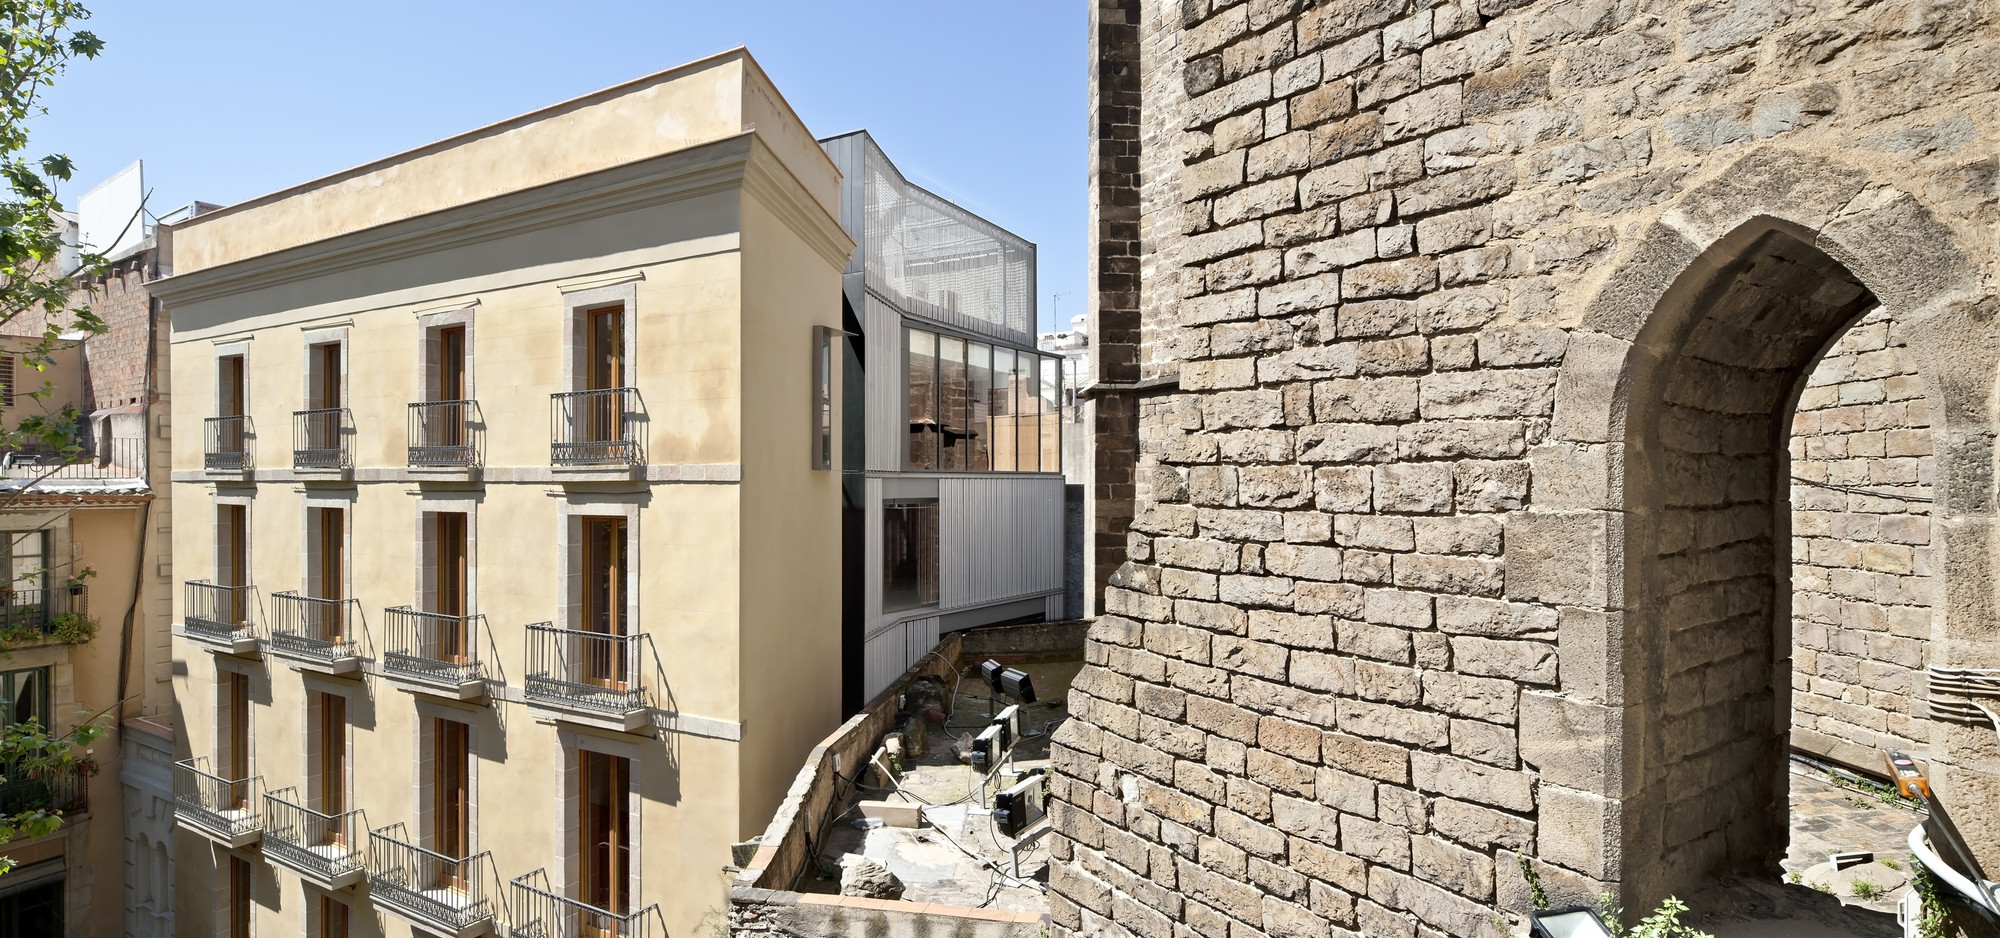 Toy Library and Offices / taller 9s arquitectes, © Adrià Goula